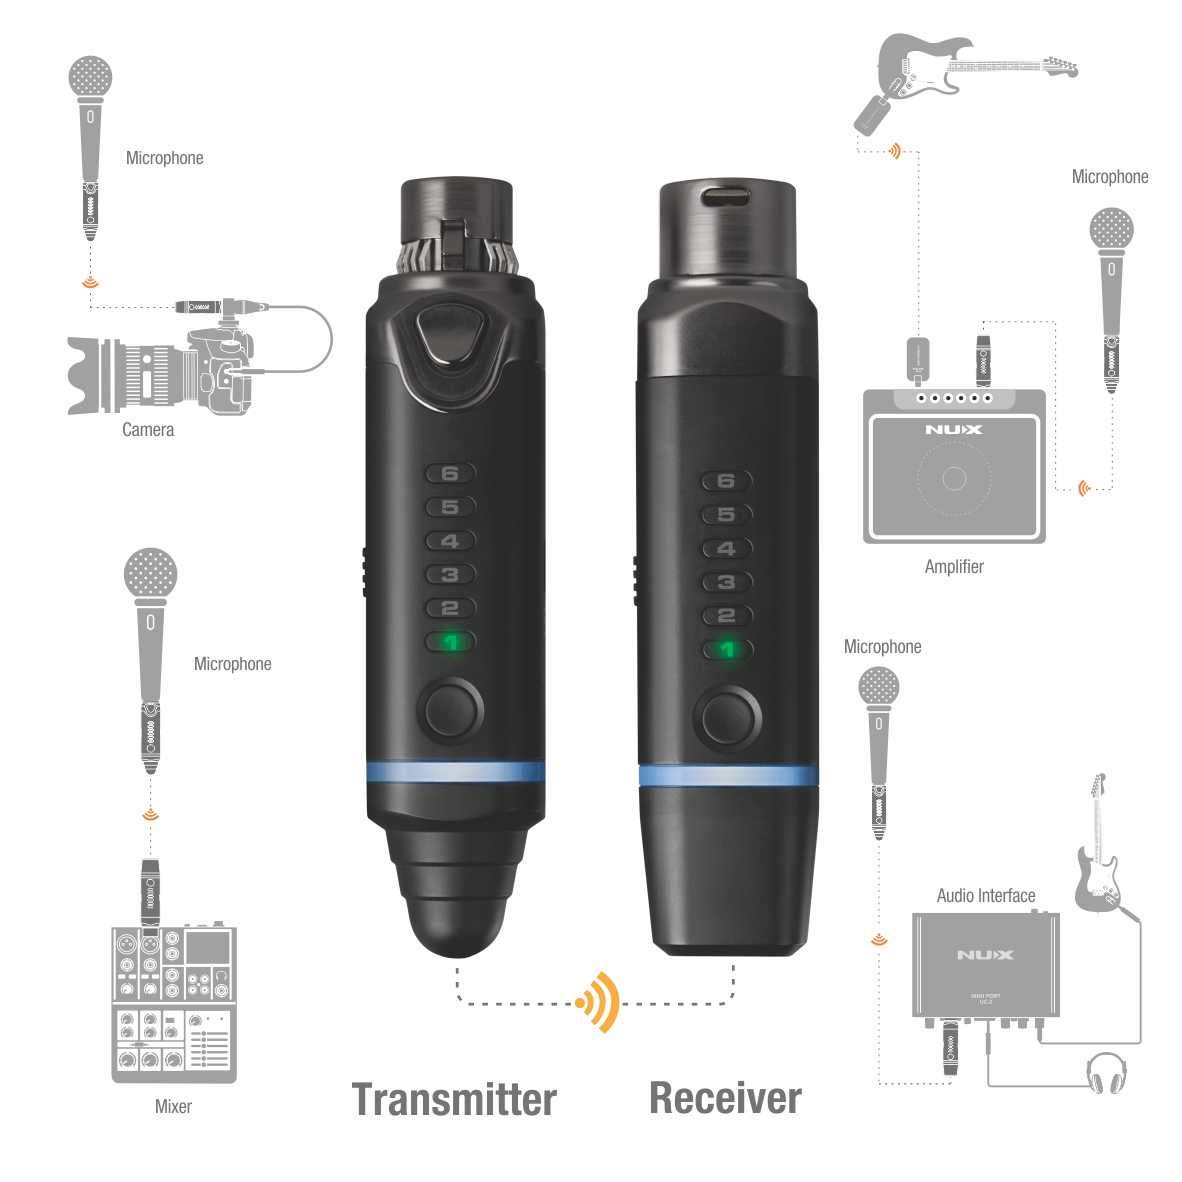 NUX B-3 Wireless Microphone System Small Compact Transmitter Snap-On Microphone Small Compact Receiver Snap-On Camera/Cellphone/PA/Mixer/Amp/Audio Interface 100 Feet Walk Rechargeable Battery 2.4GHz